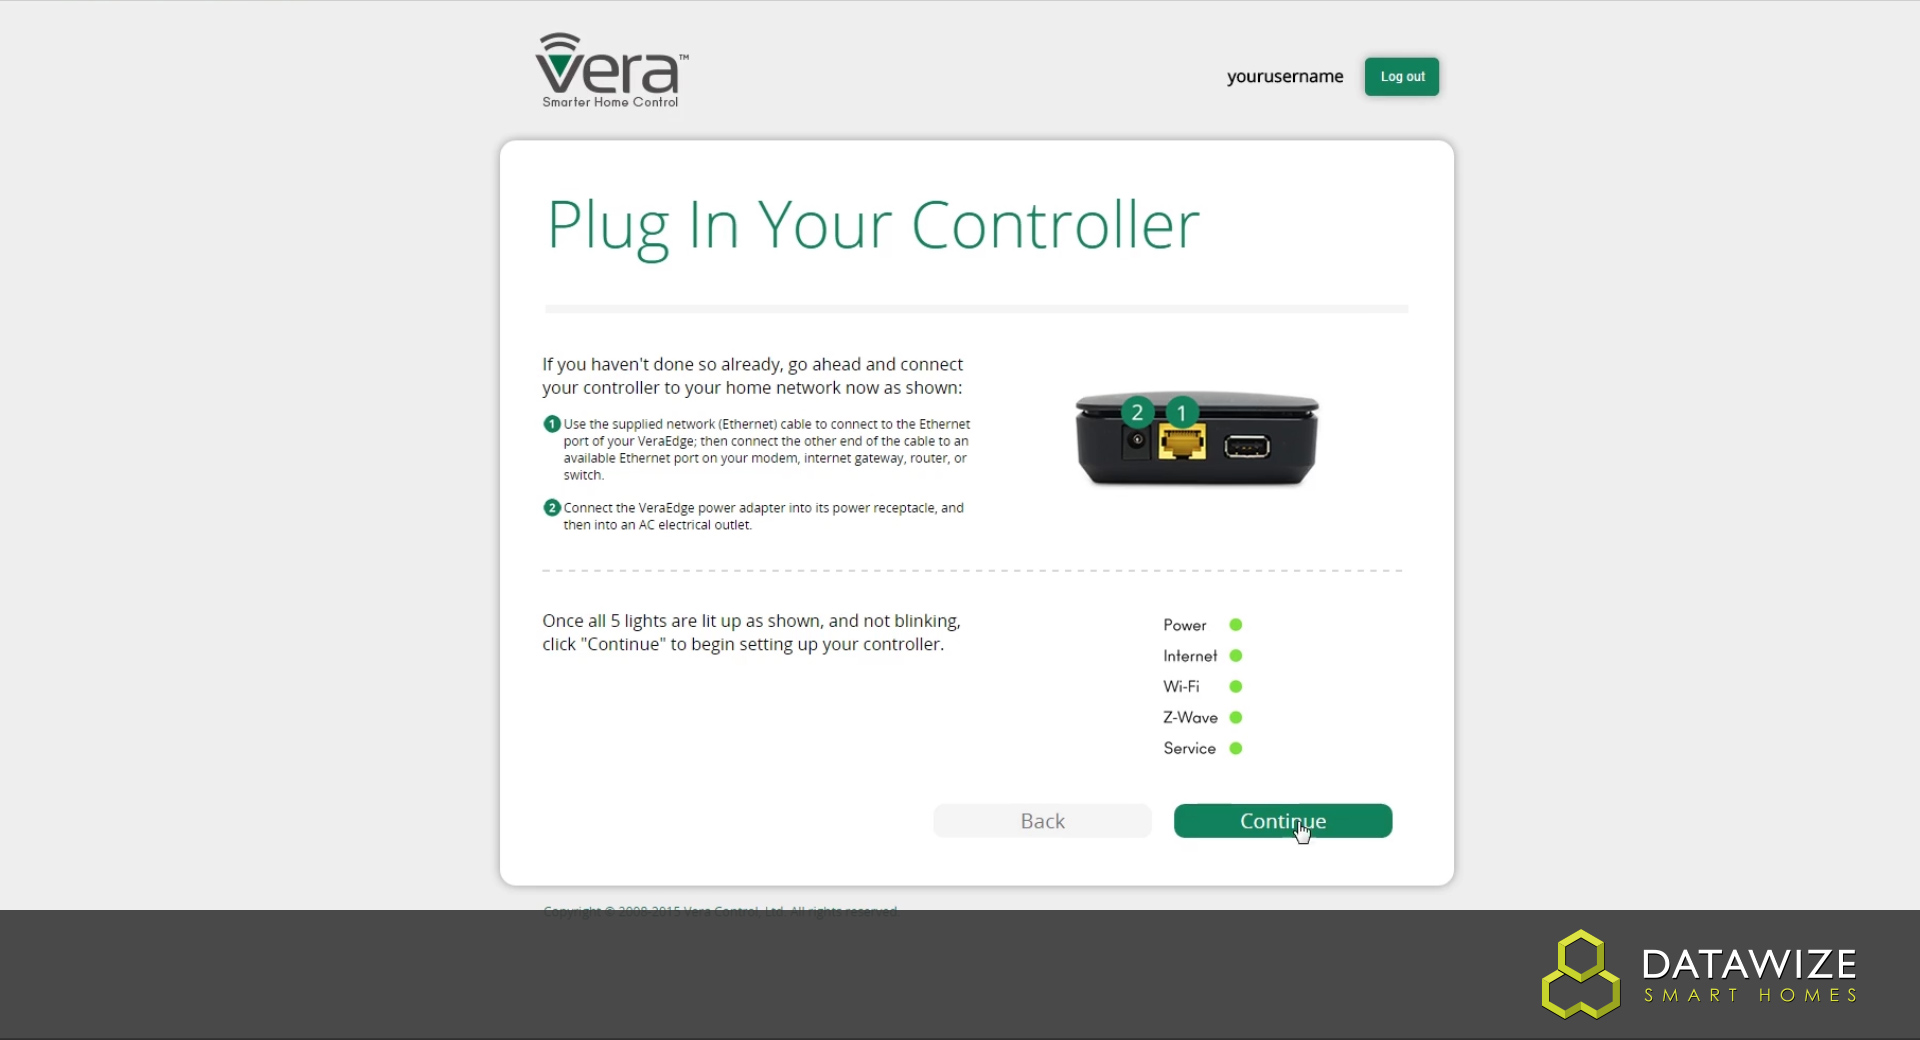 How to Setup a VeraEdge - Plug in your controller